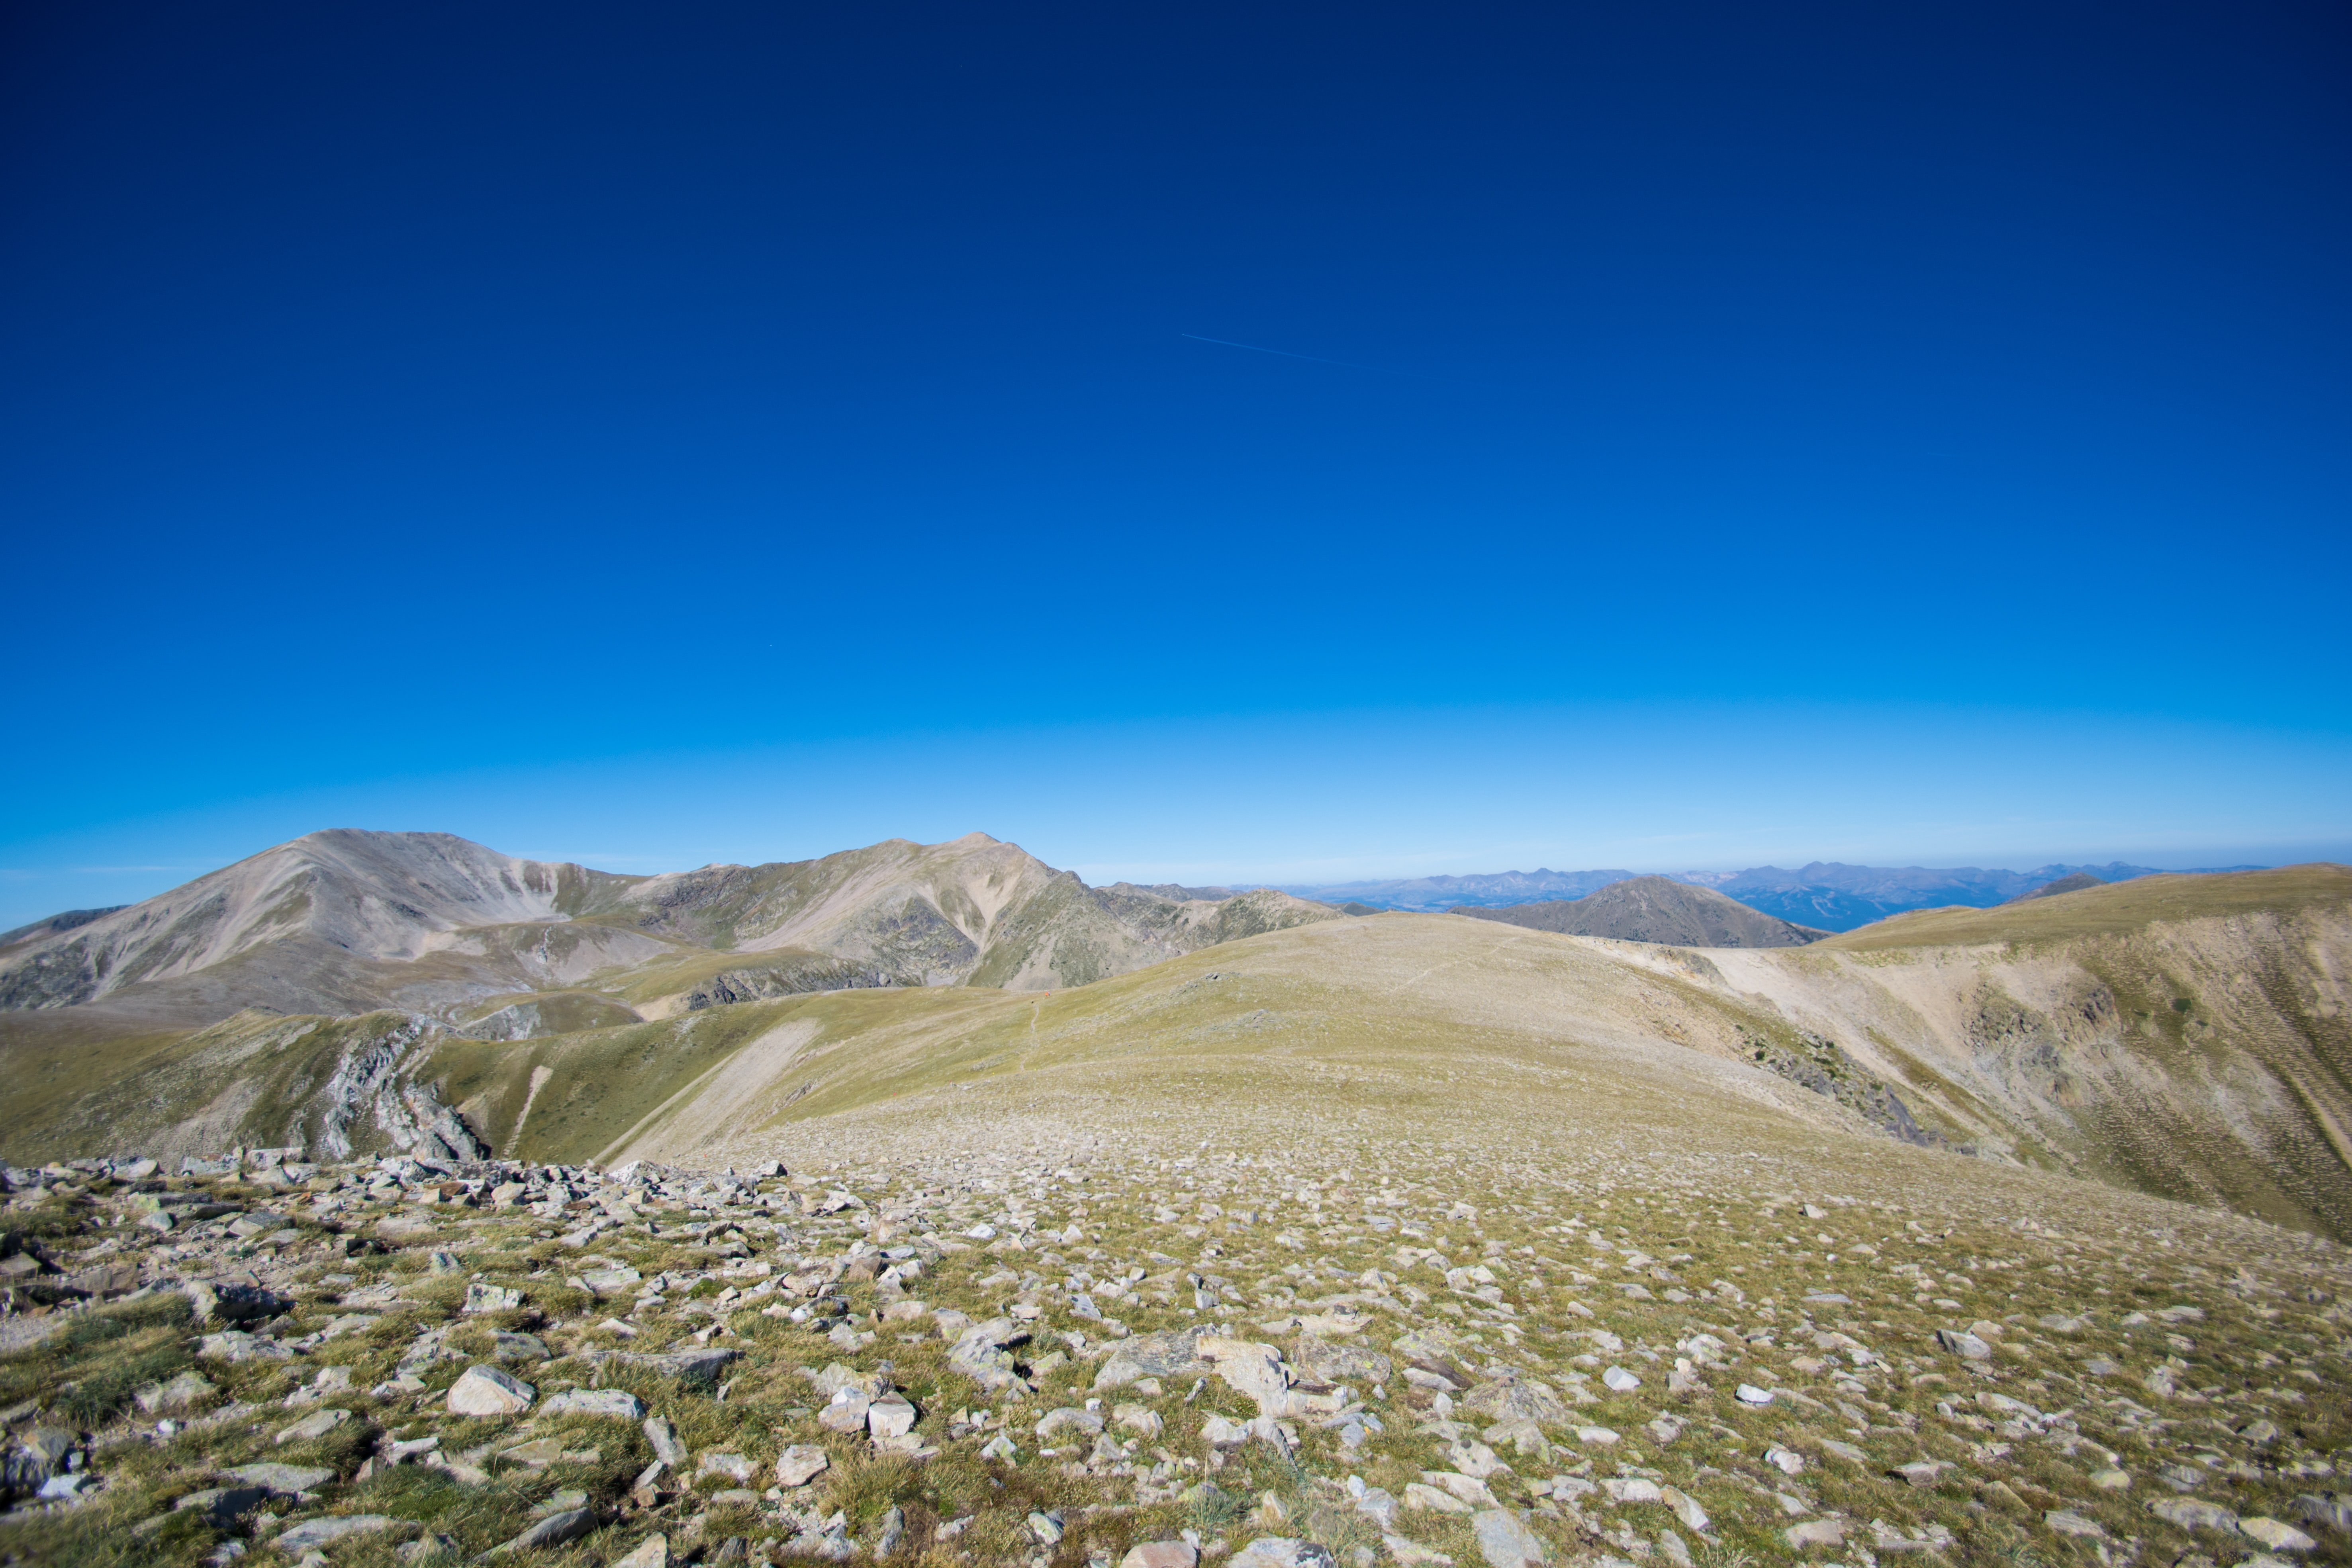 landscape photography of green and brown mountain